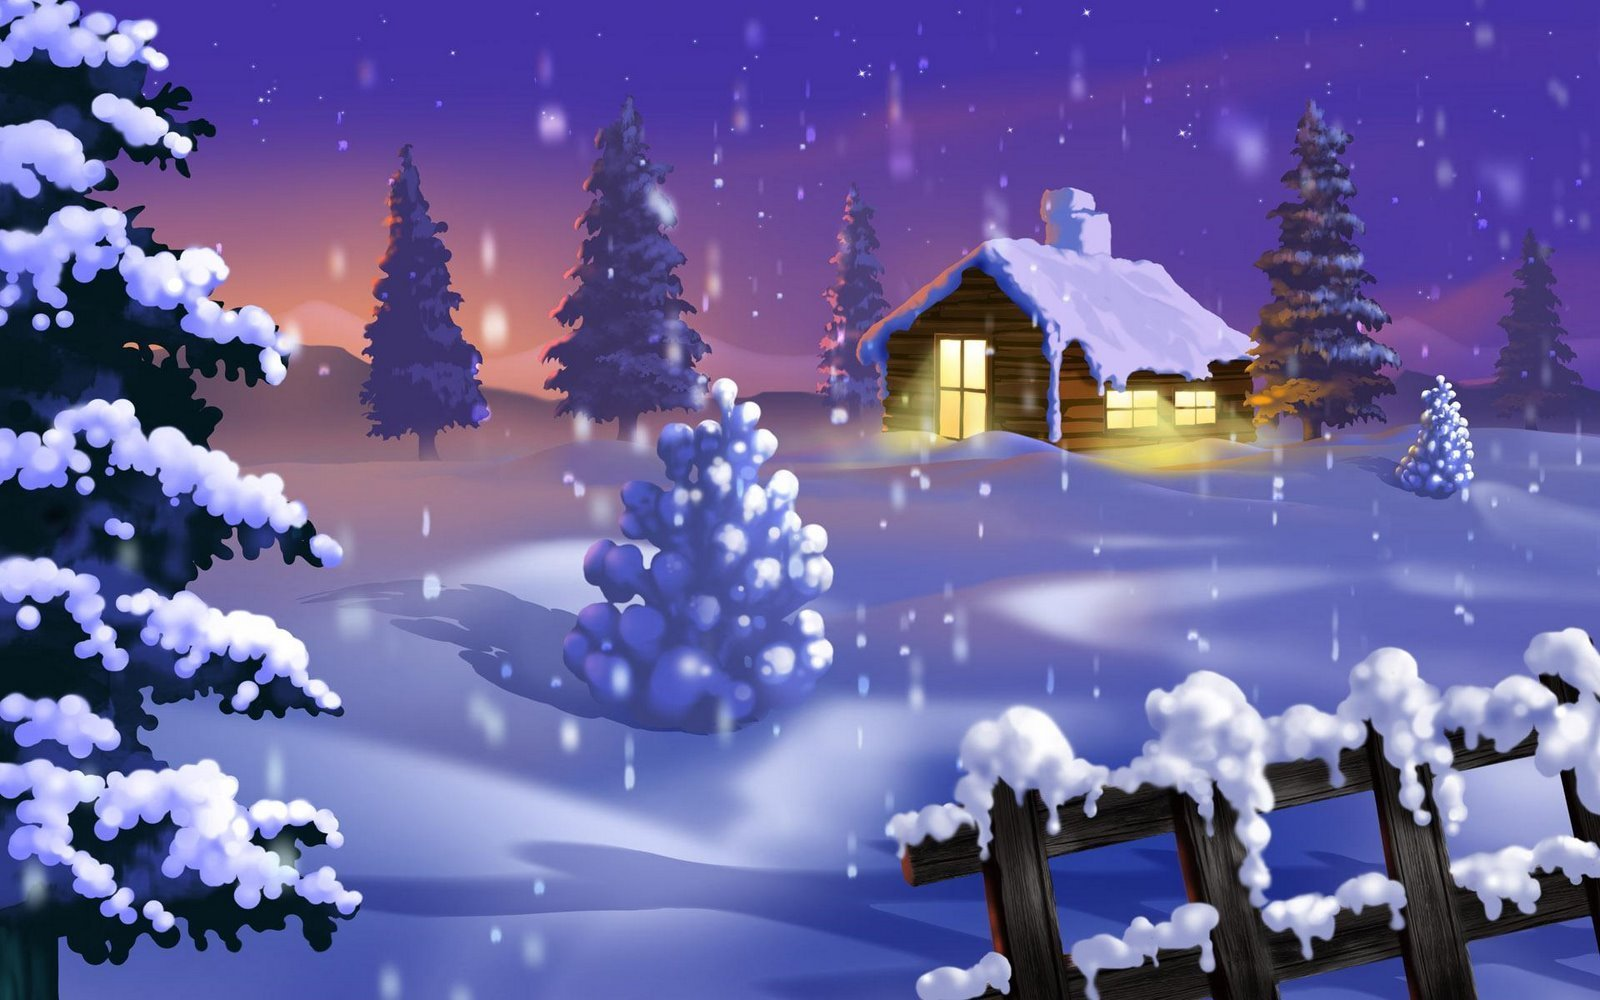 wallpaper christmas wallpapers - photo #48